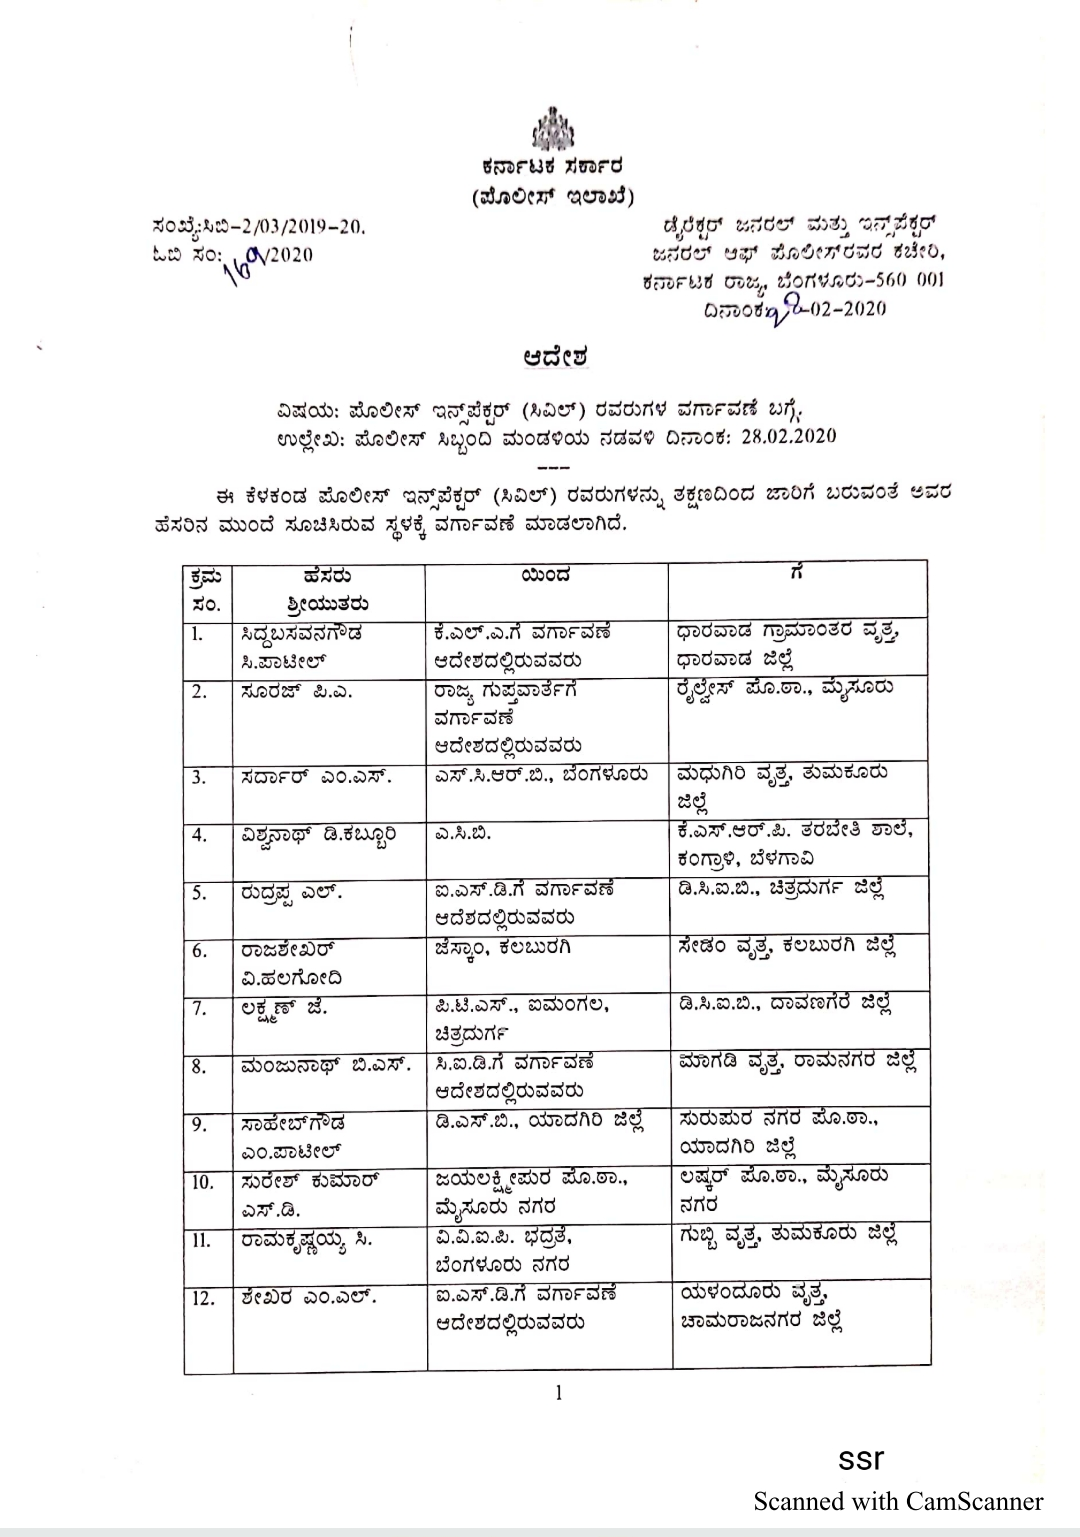 Transfer Orders of 57 Sub-Inspectors of the Police Department